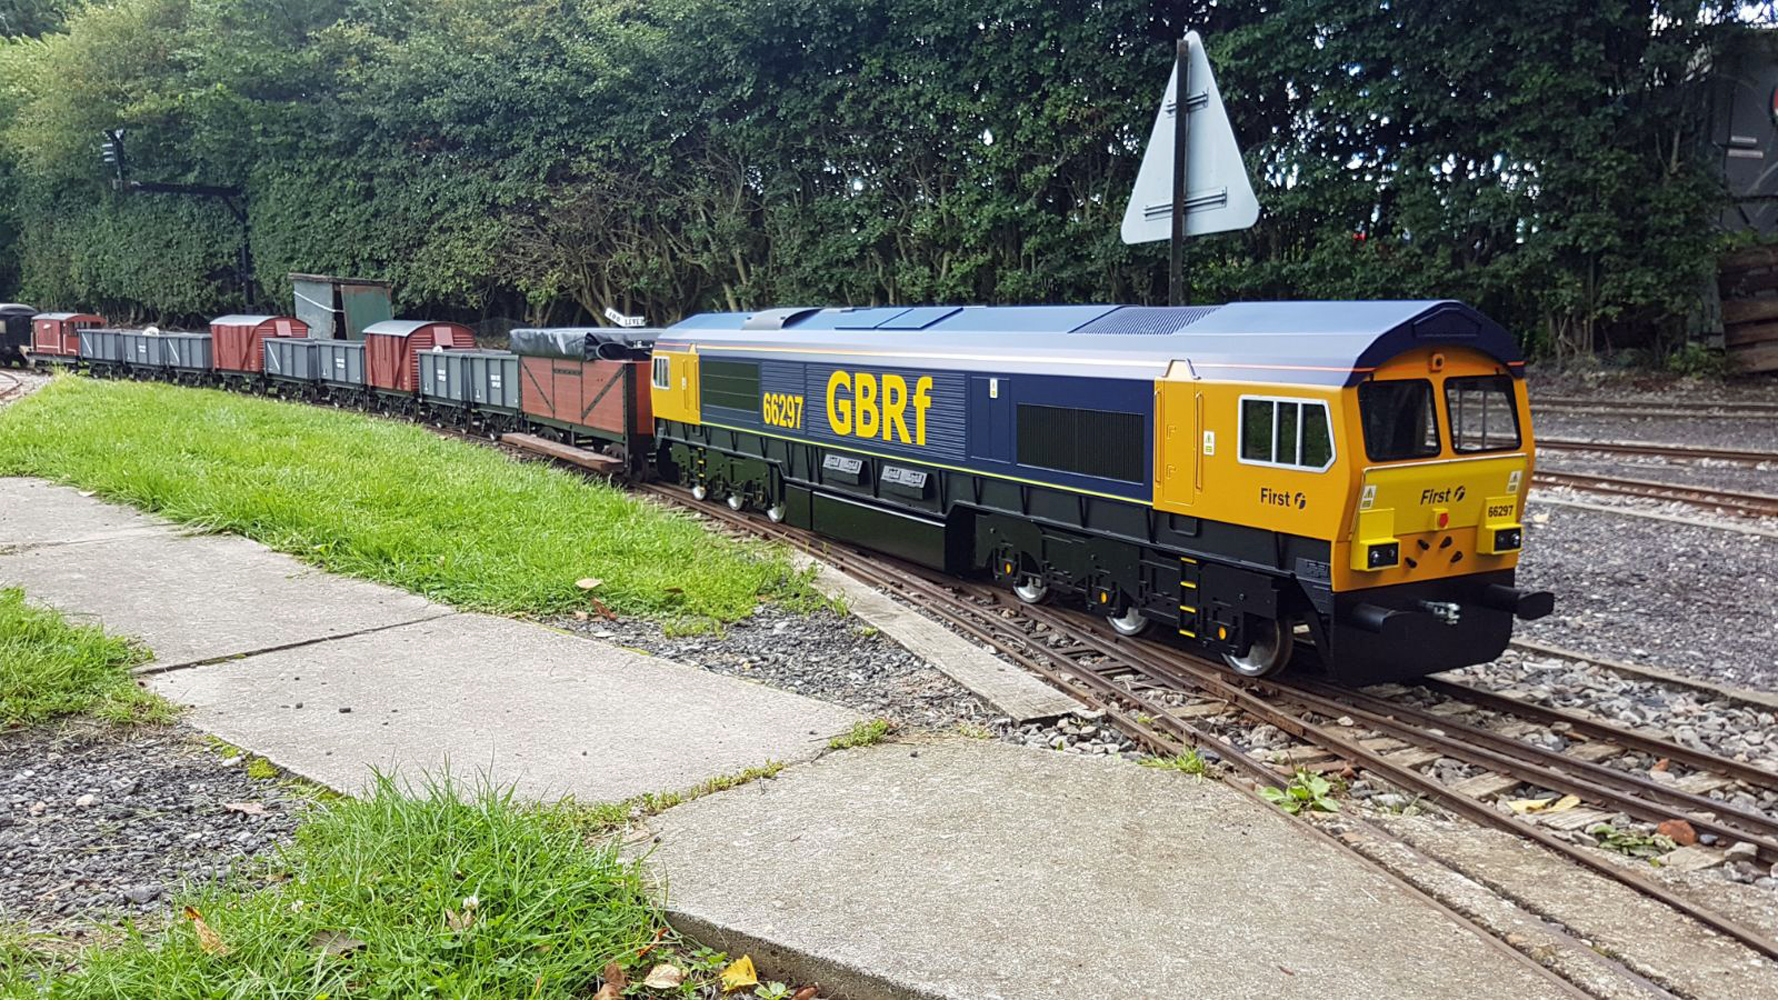 Class 66 66297 with wagon train